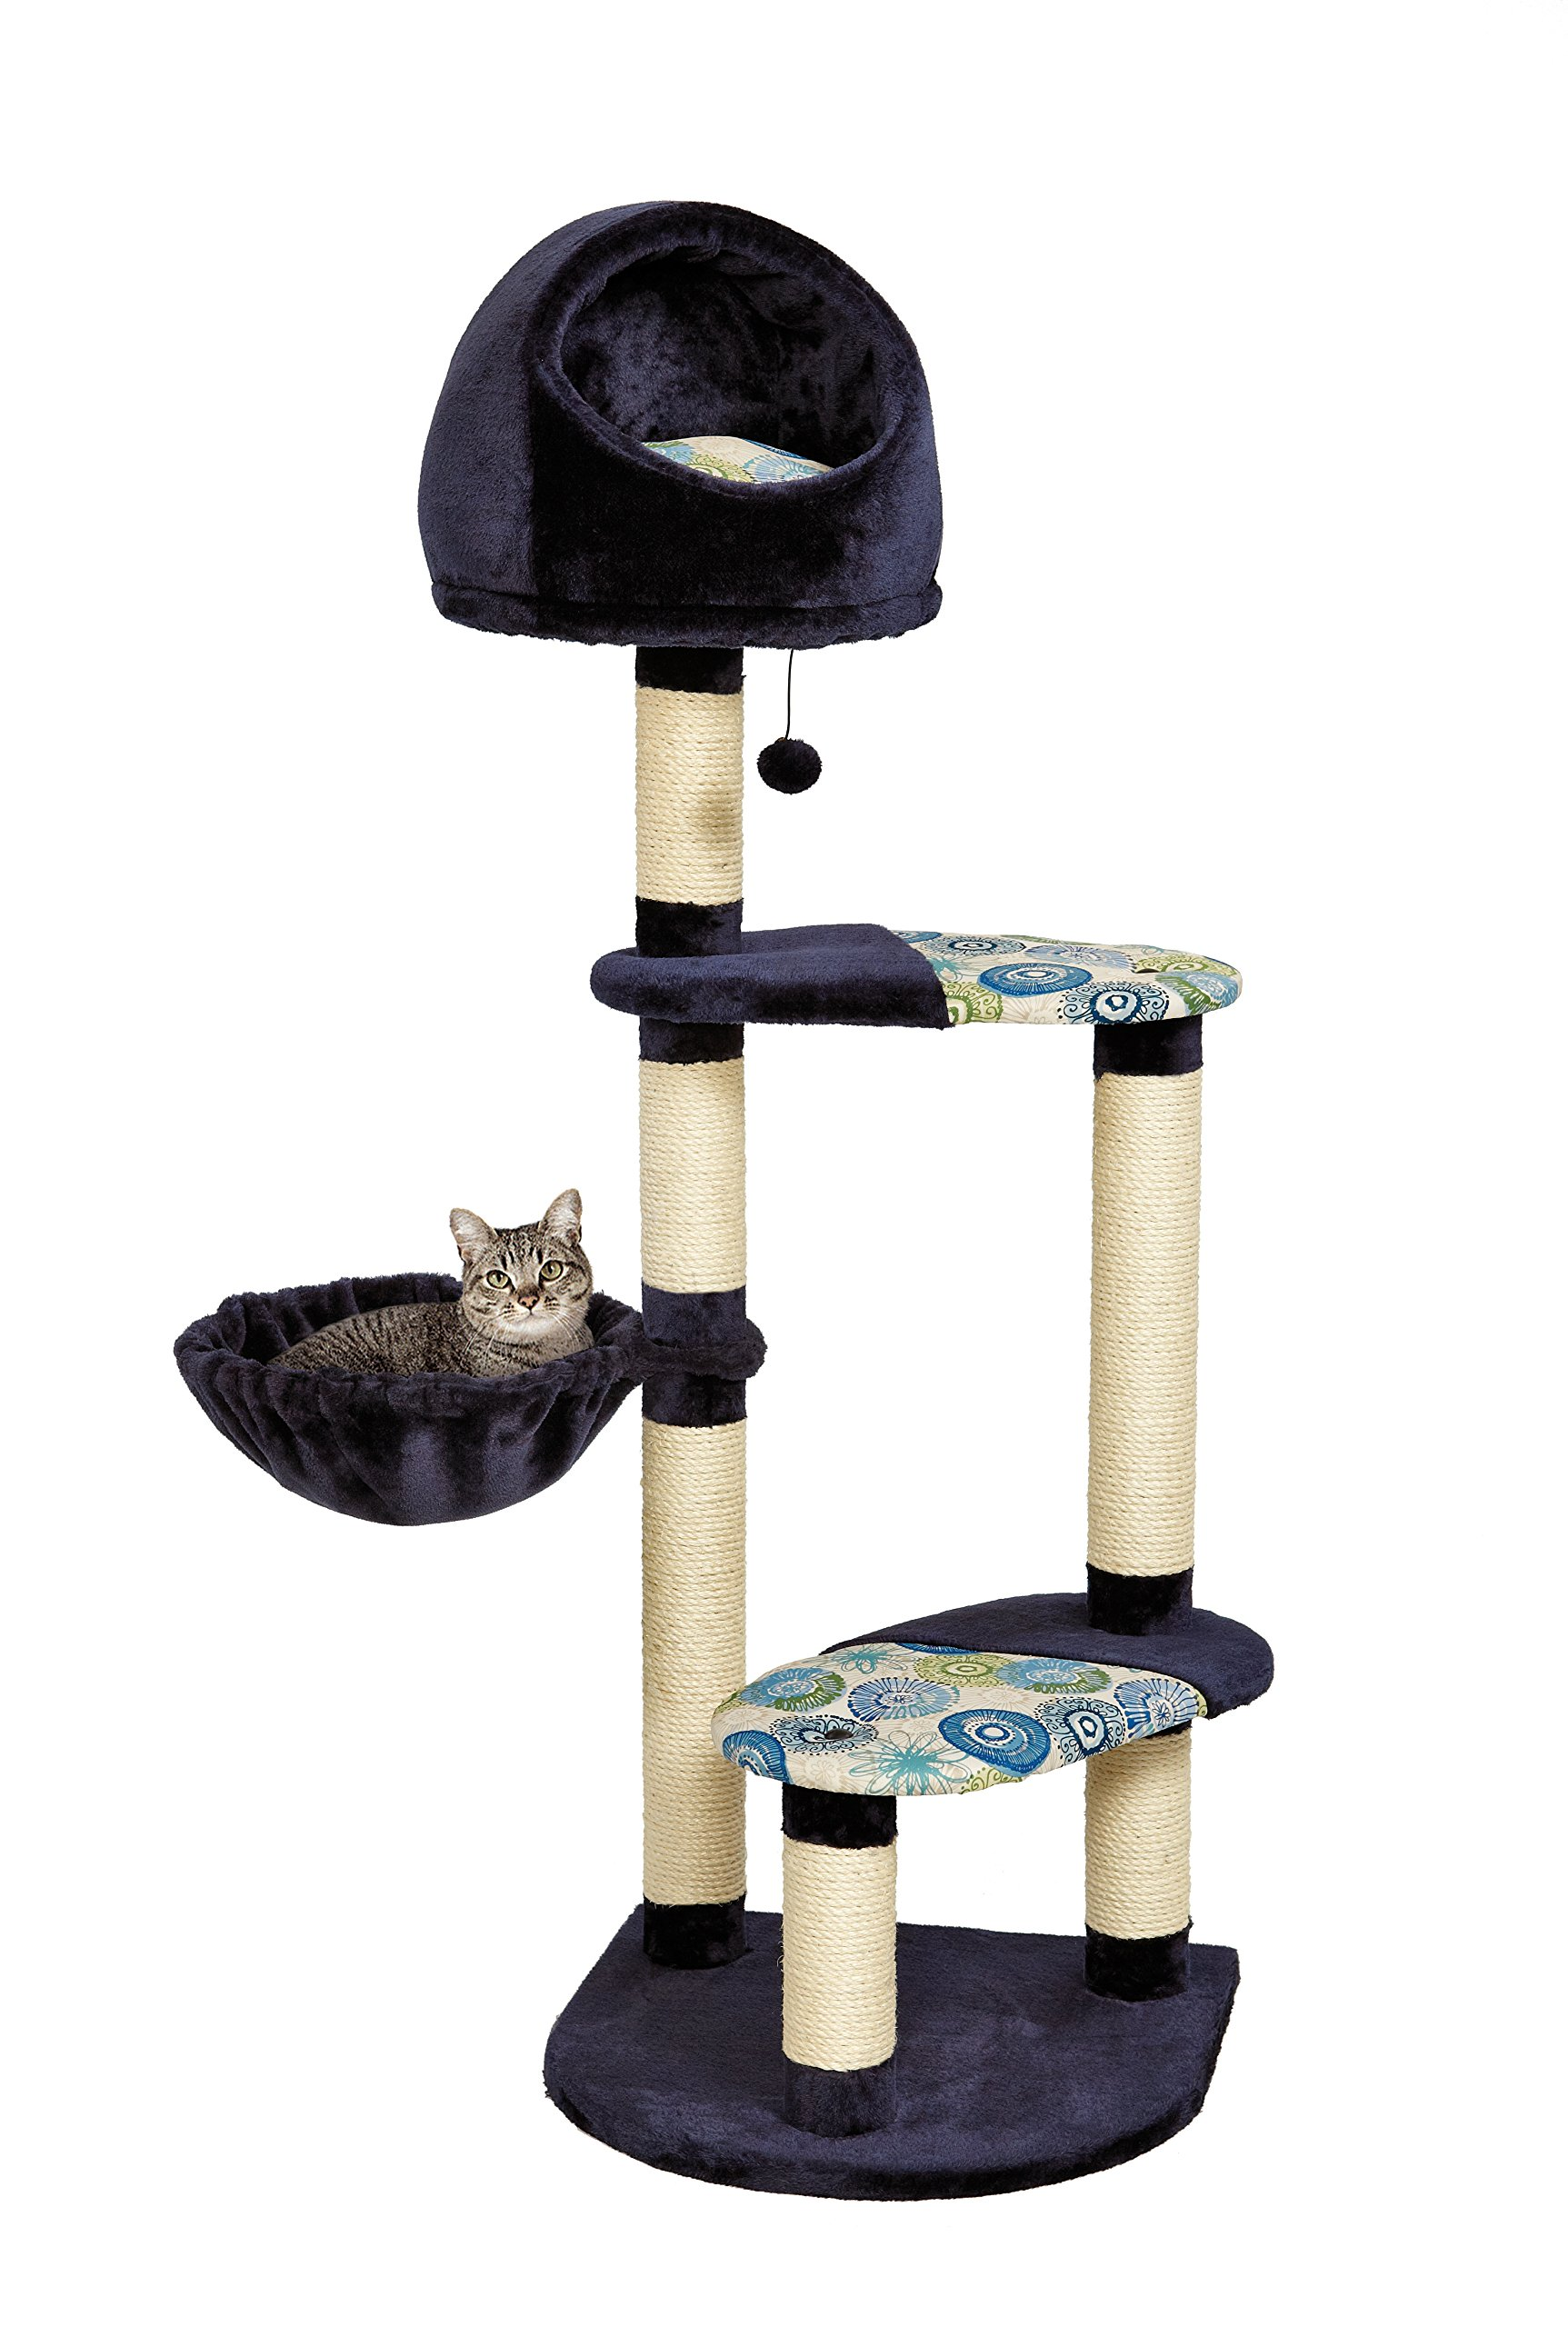 Cat Tree | ''Resort'' Cat Tree / Cat Furniture, 4-Tier Cat Tree w/ Sisal Wrapped Cat Scratching Support Posts, Hanging Cat Bunker Bed & High Canopy Cat Perch, Blue / White Pattern, Large Cat Tree